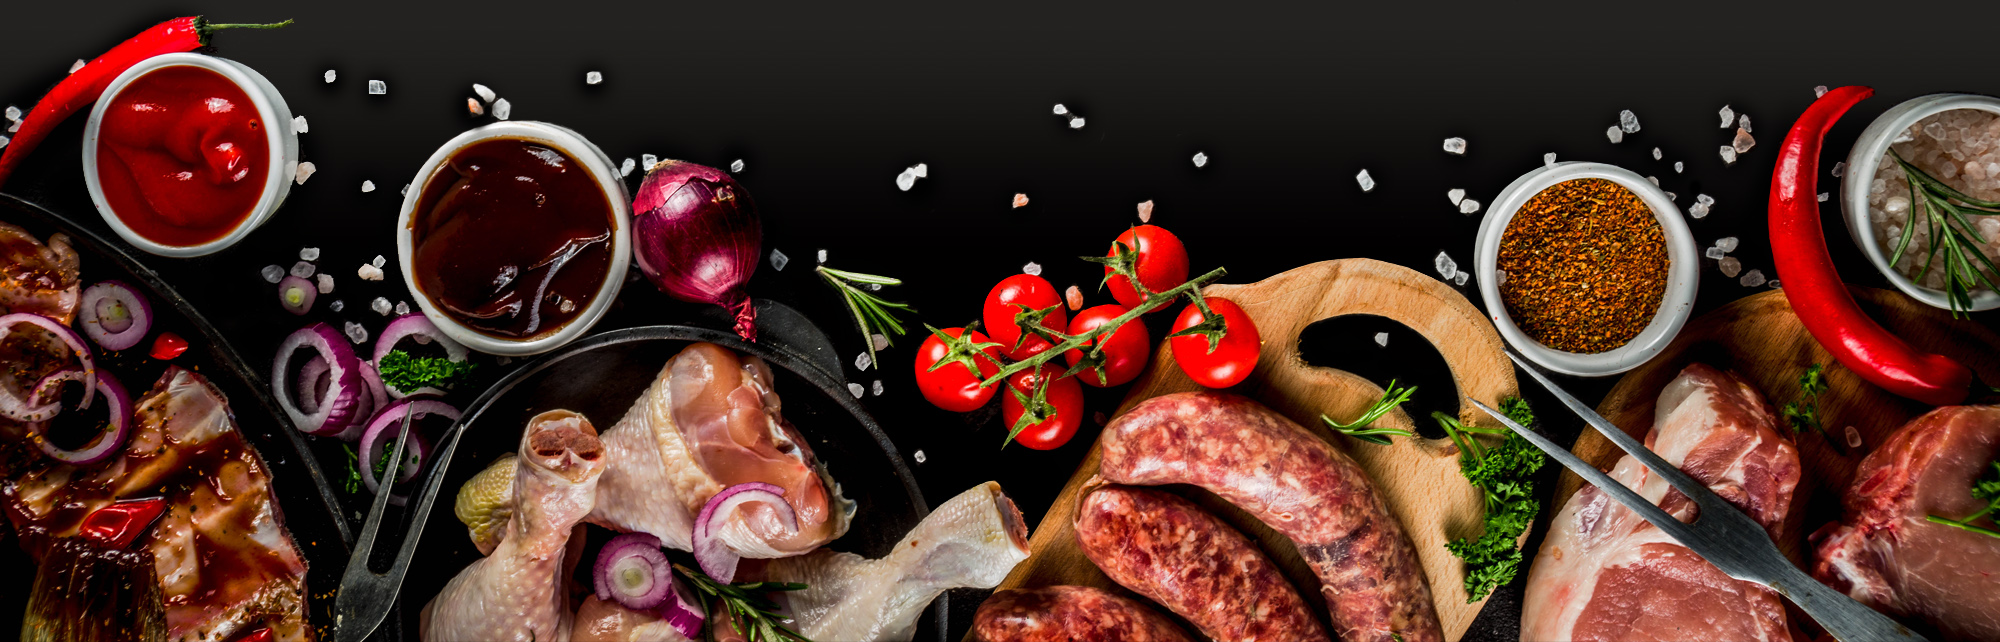 fresh local meat and vegetables